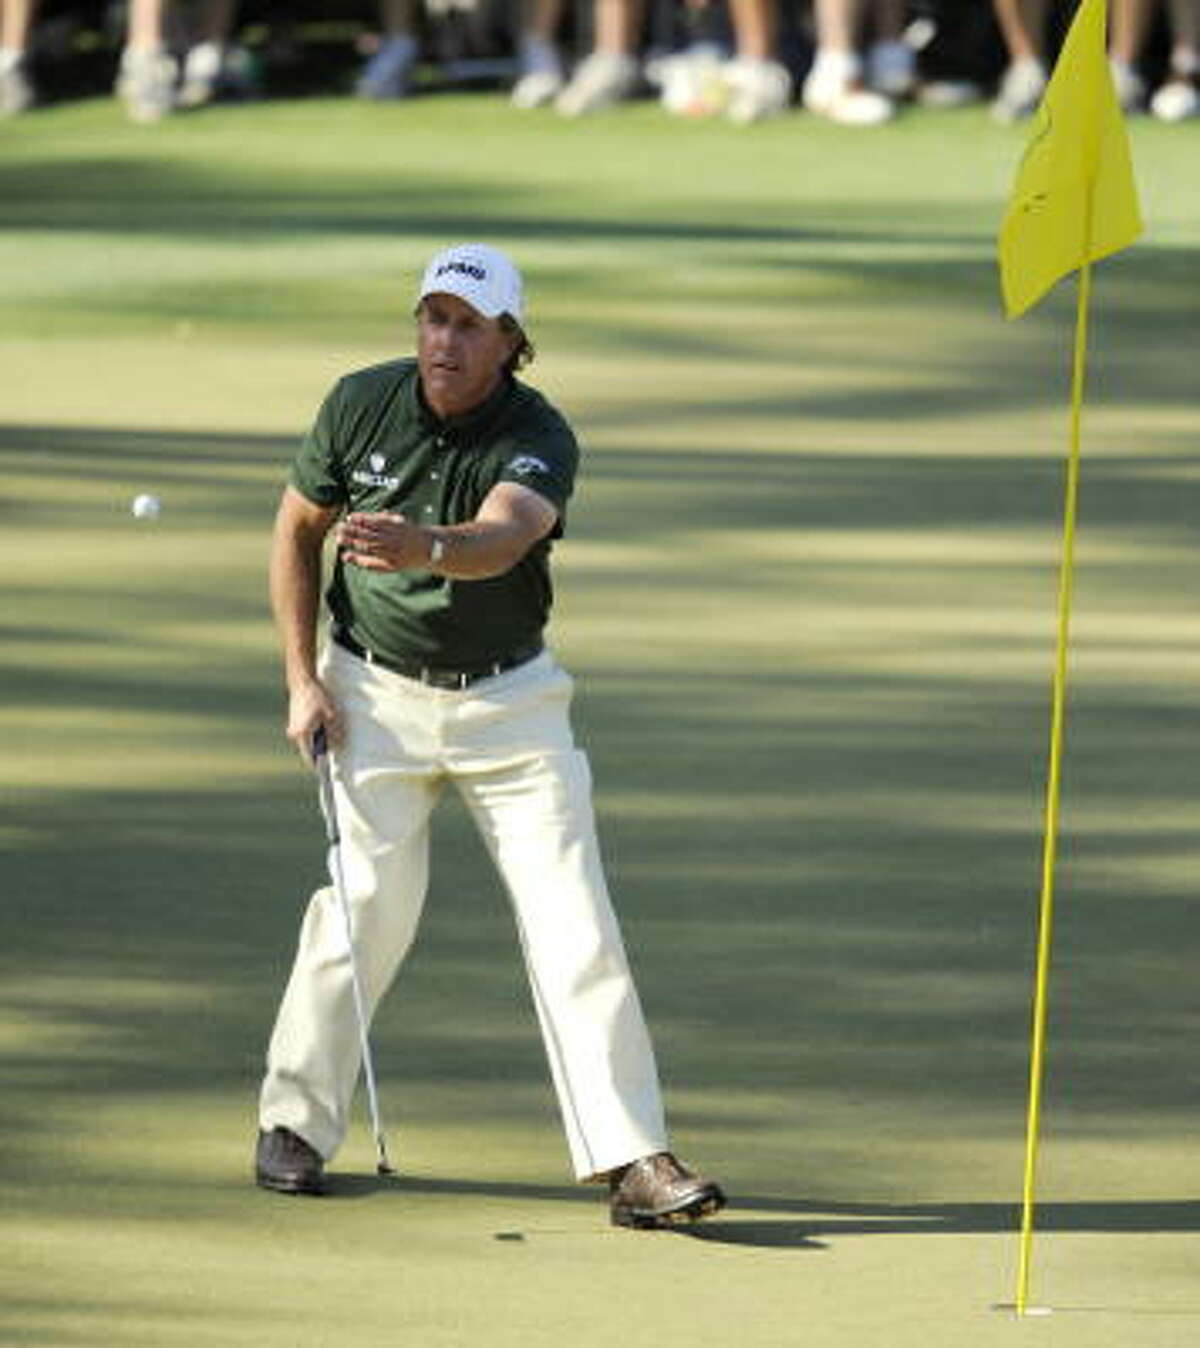 Phil Mickelson enters the final round one shot behind leader Lee Westwood.